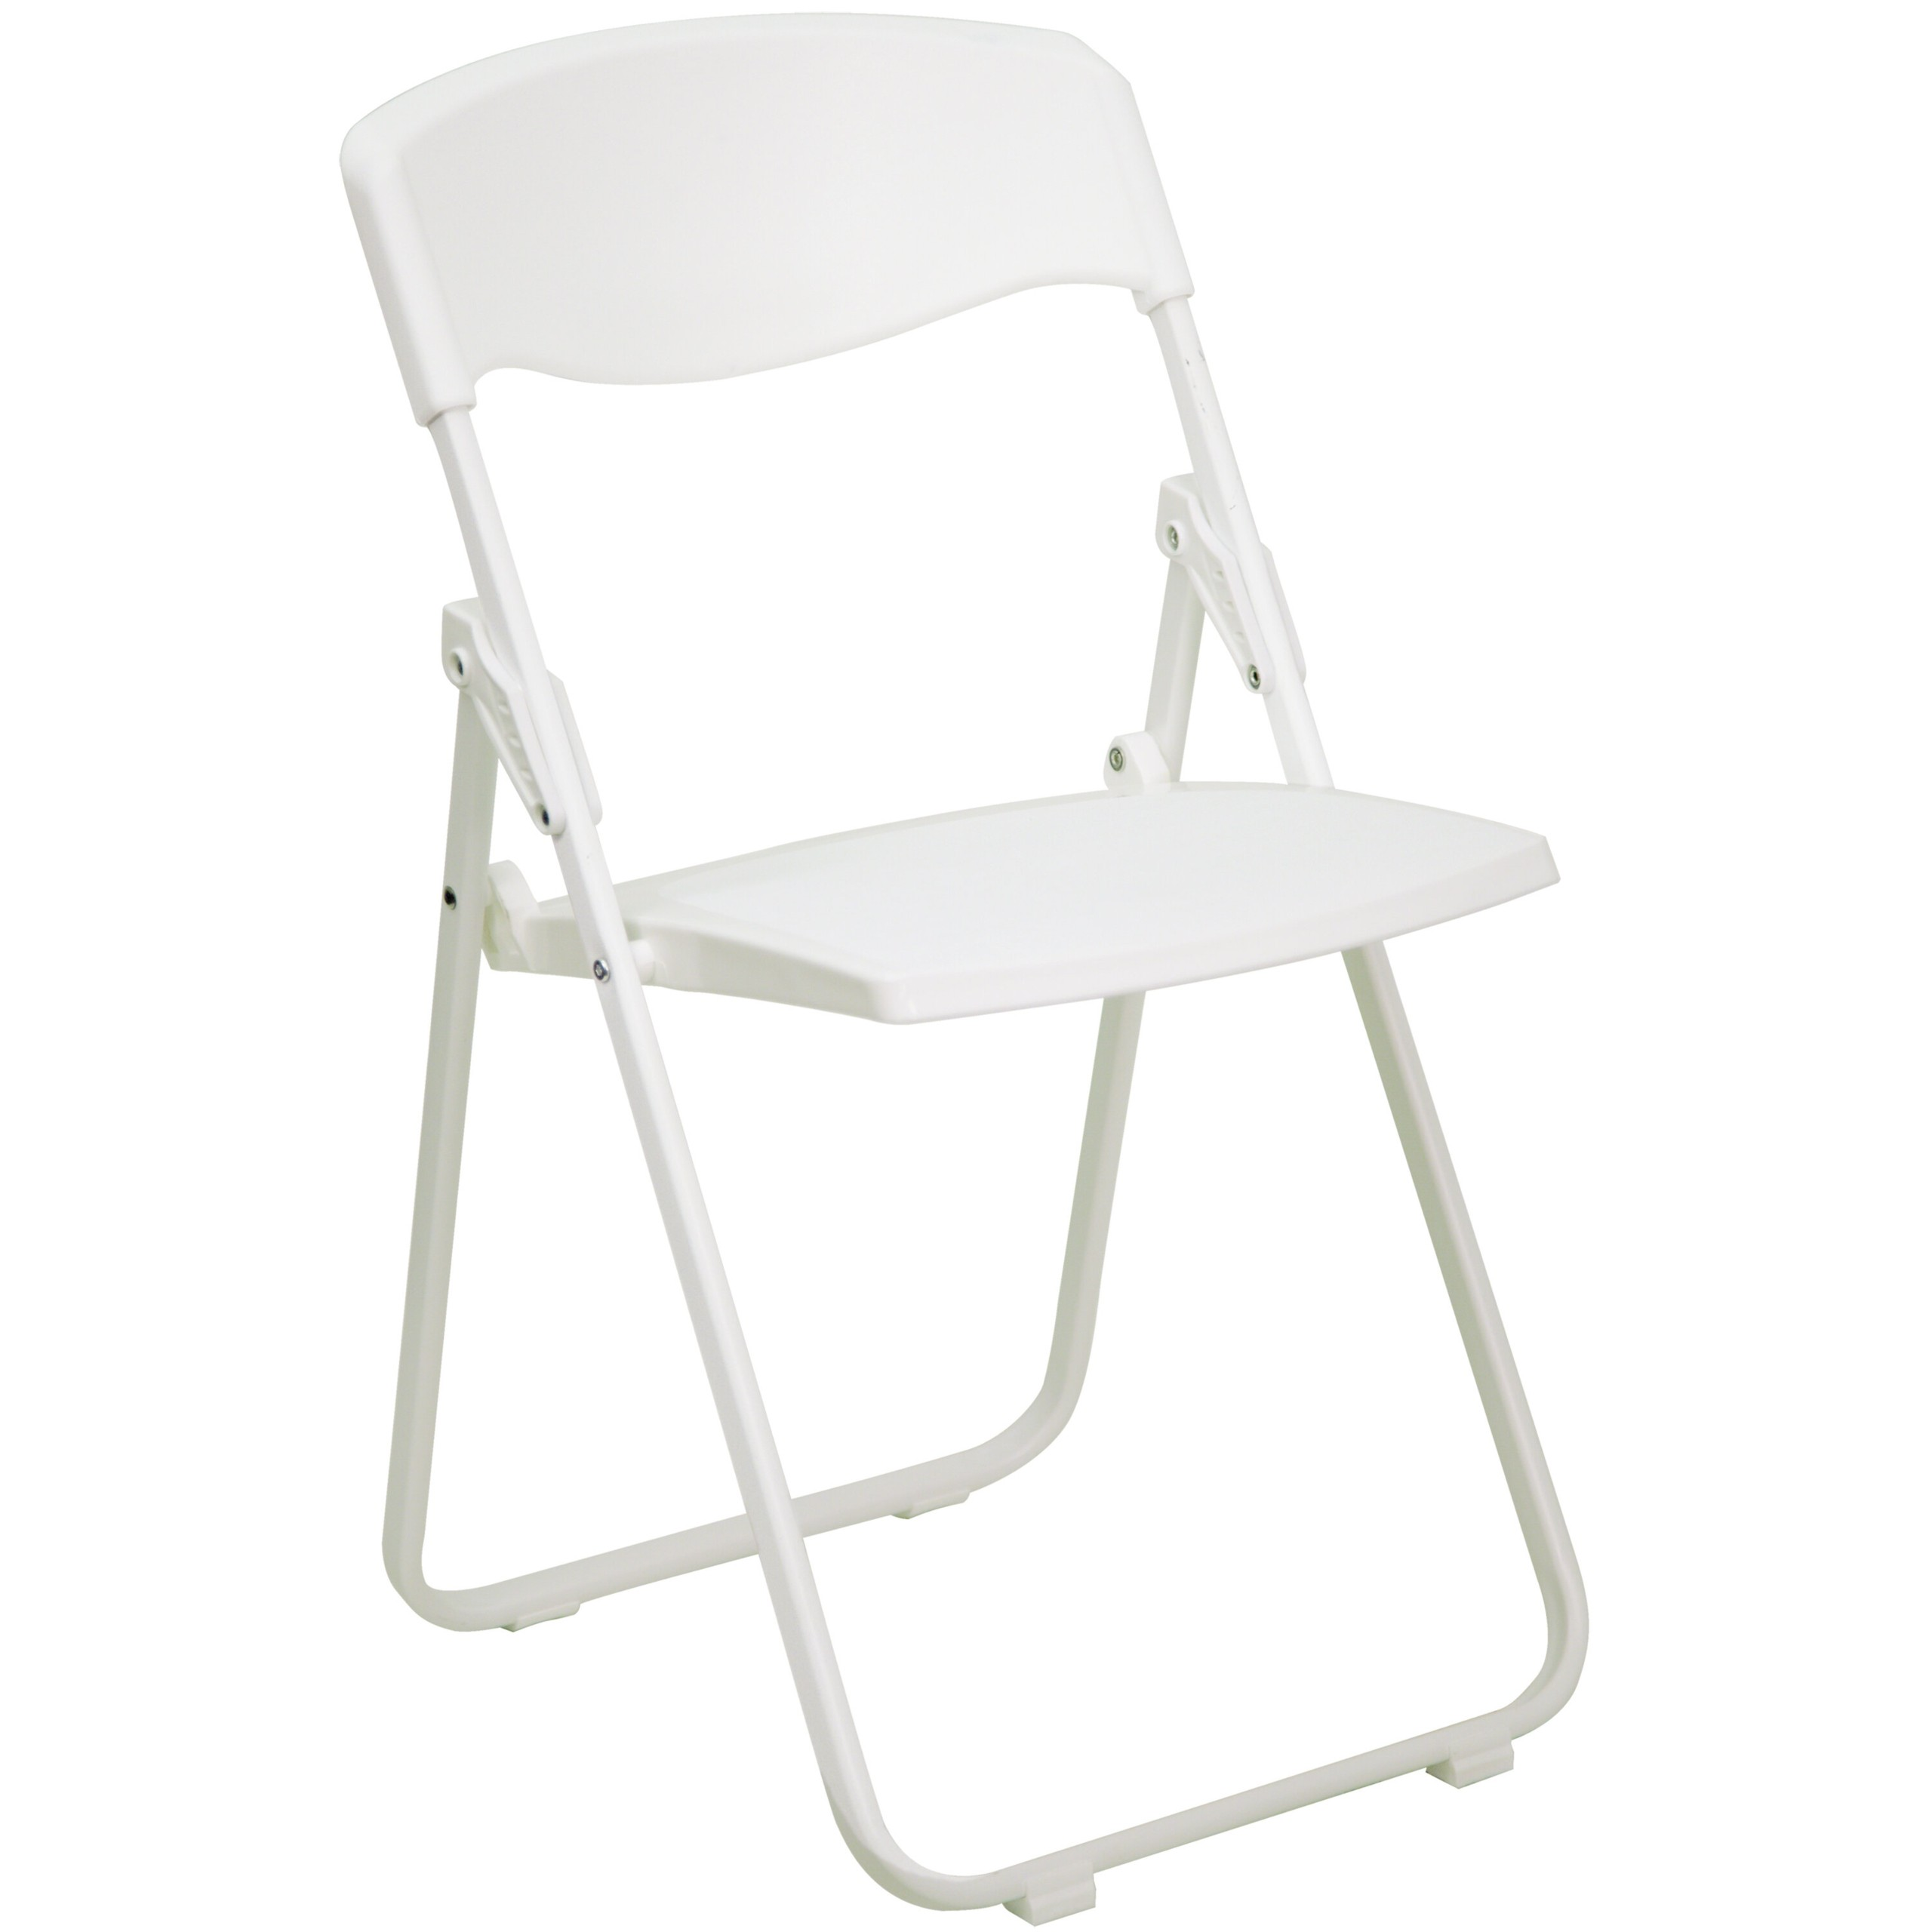 white folding chair grey rocking nursery light weight chairs ideas on foter flash furniture rut i gg hercules series 880 pound heavy duty this